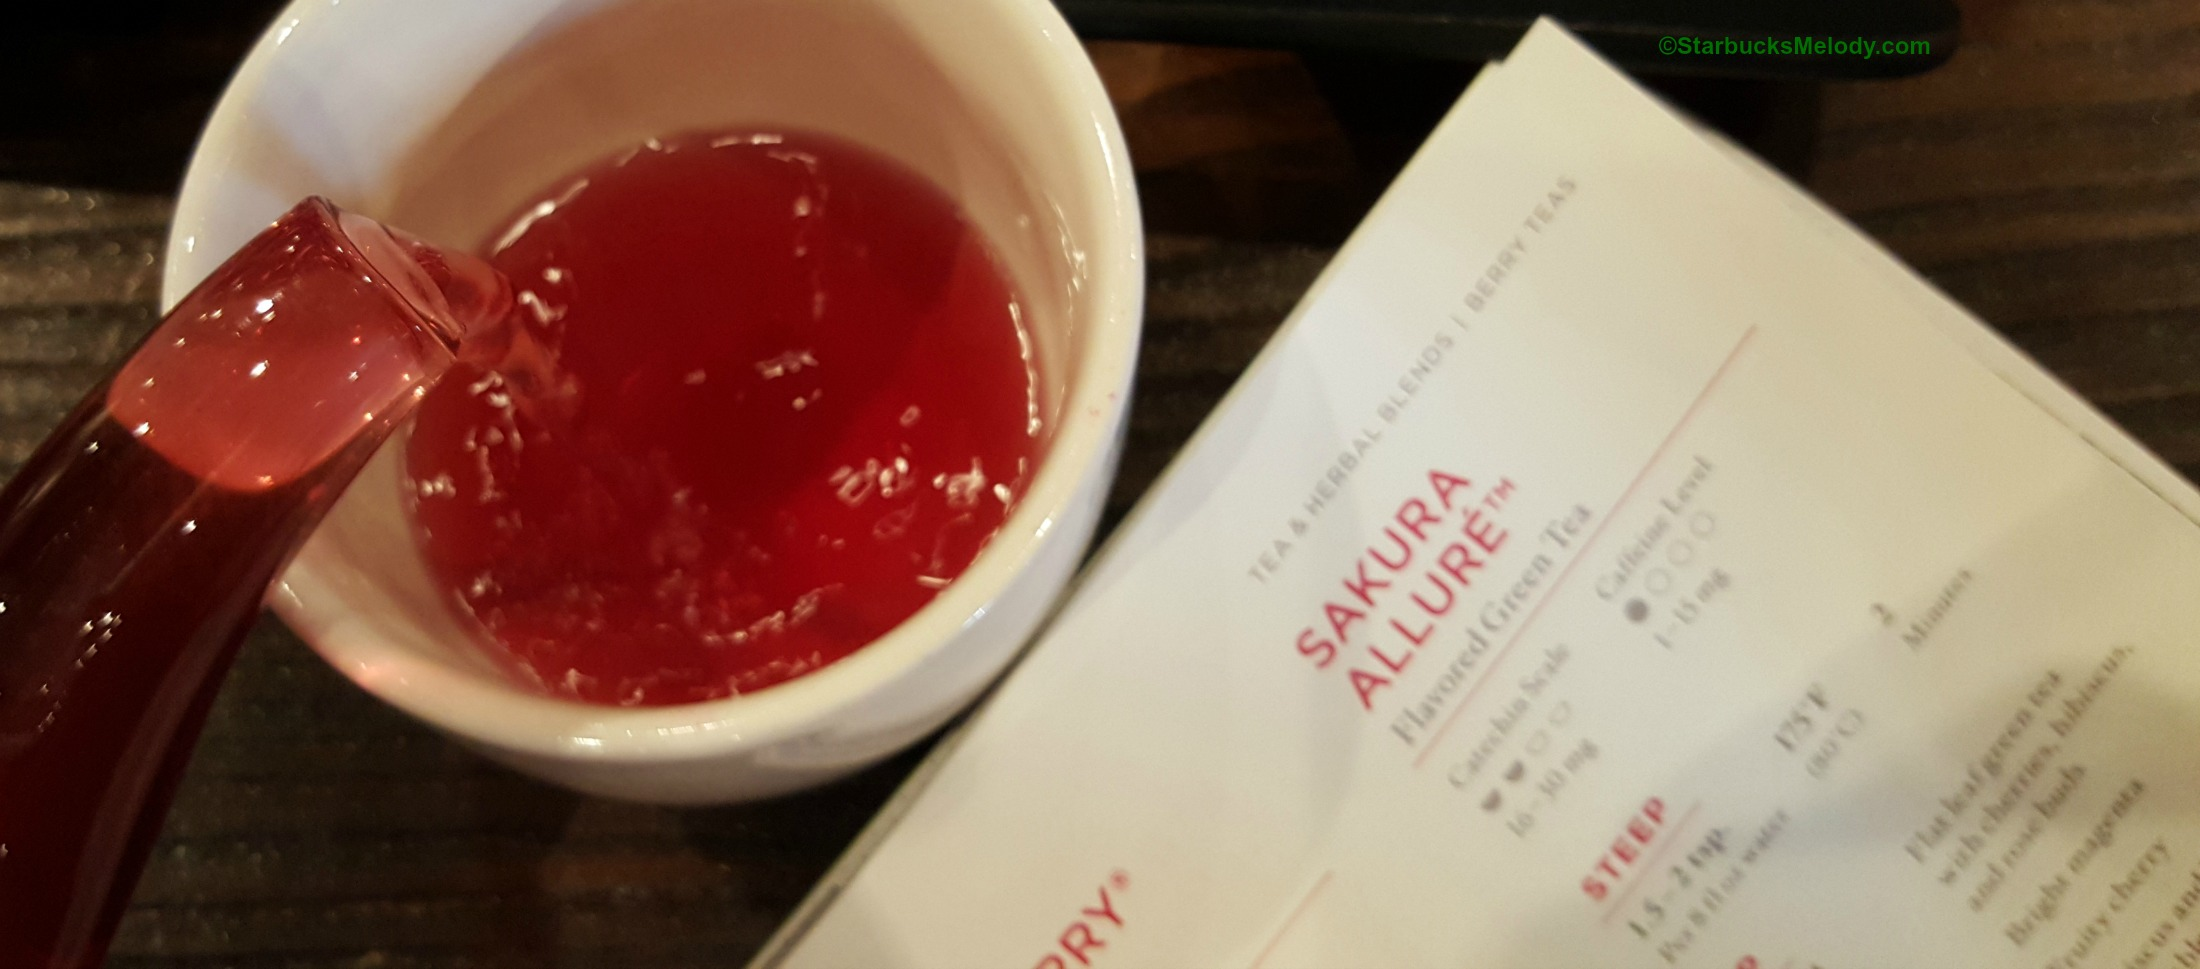 2 - 1 - 20151129_111752 sakura allure tea.jpg